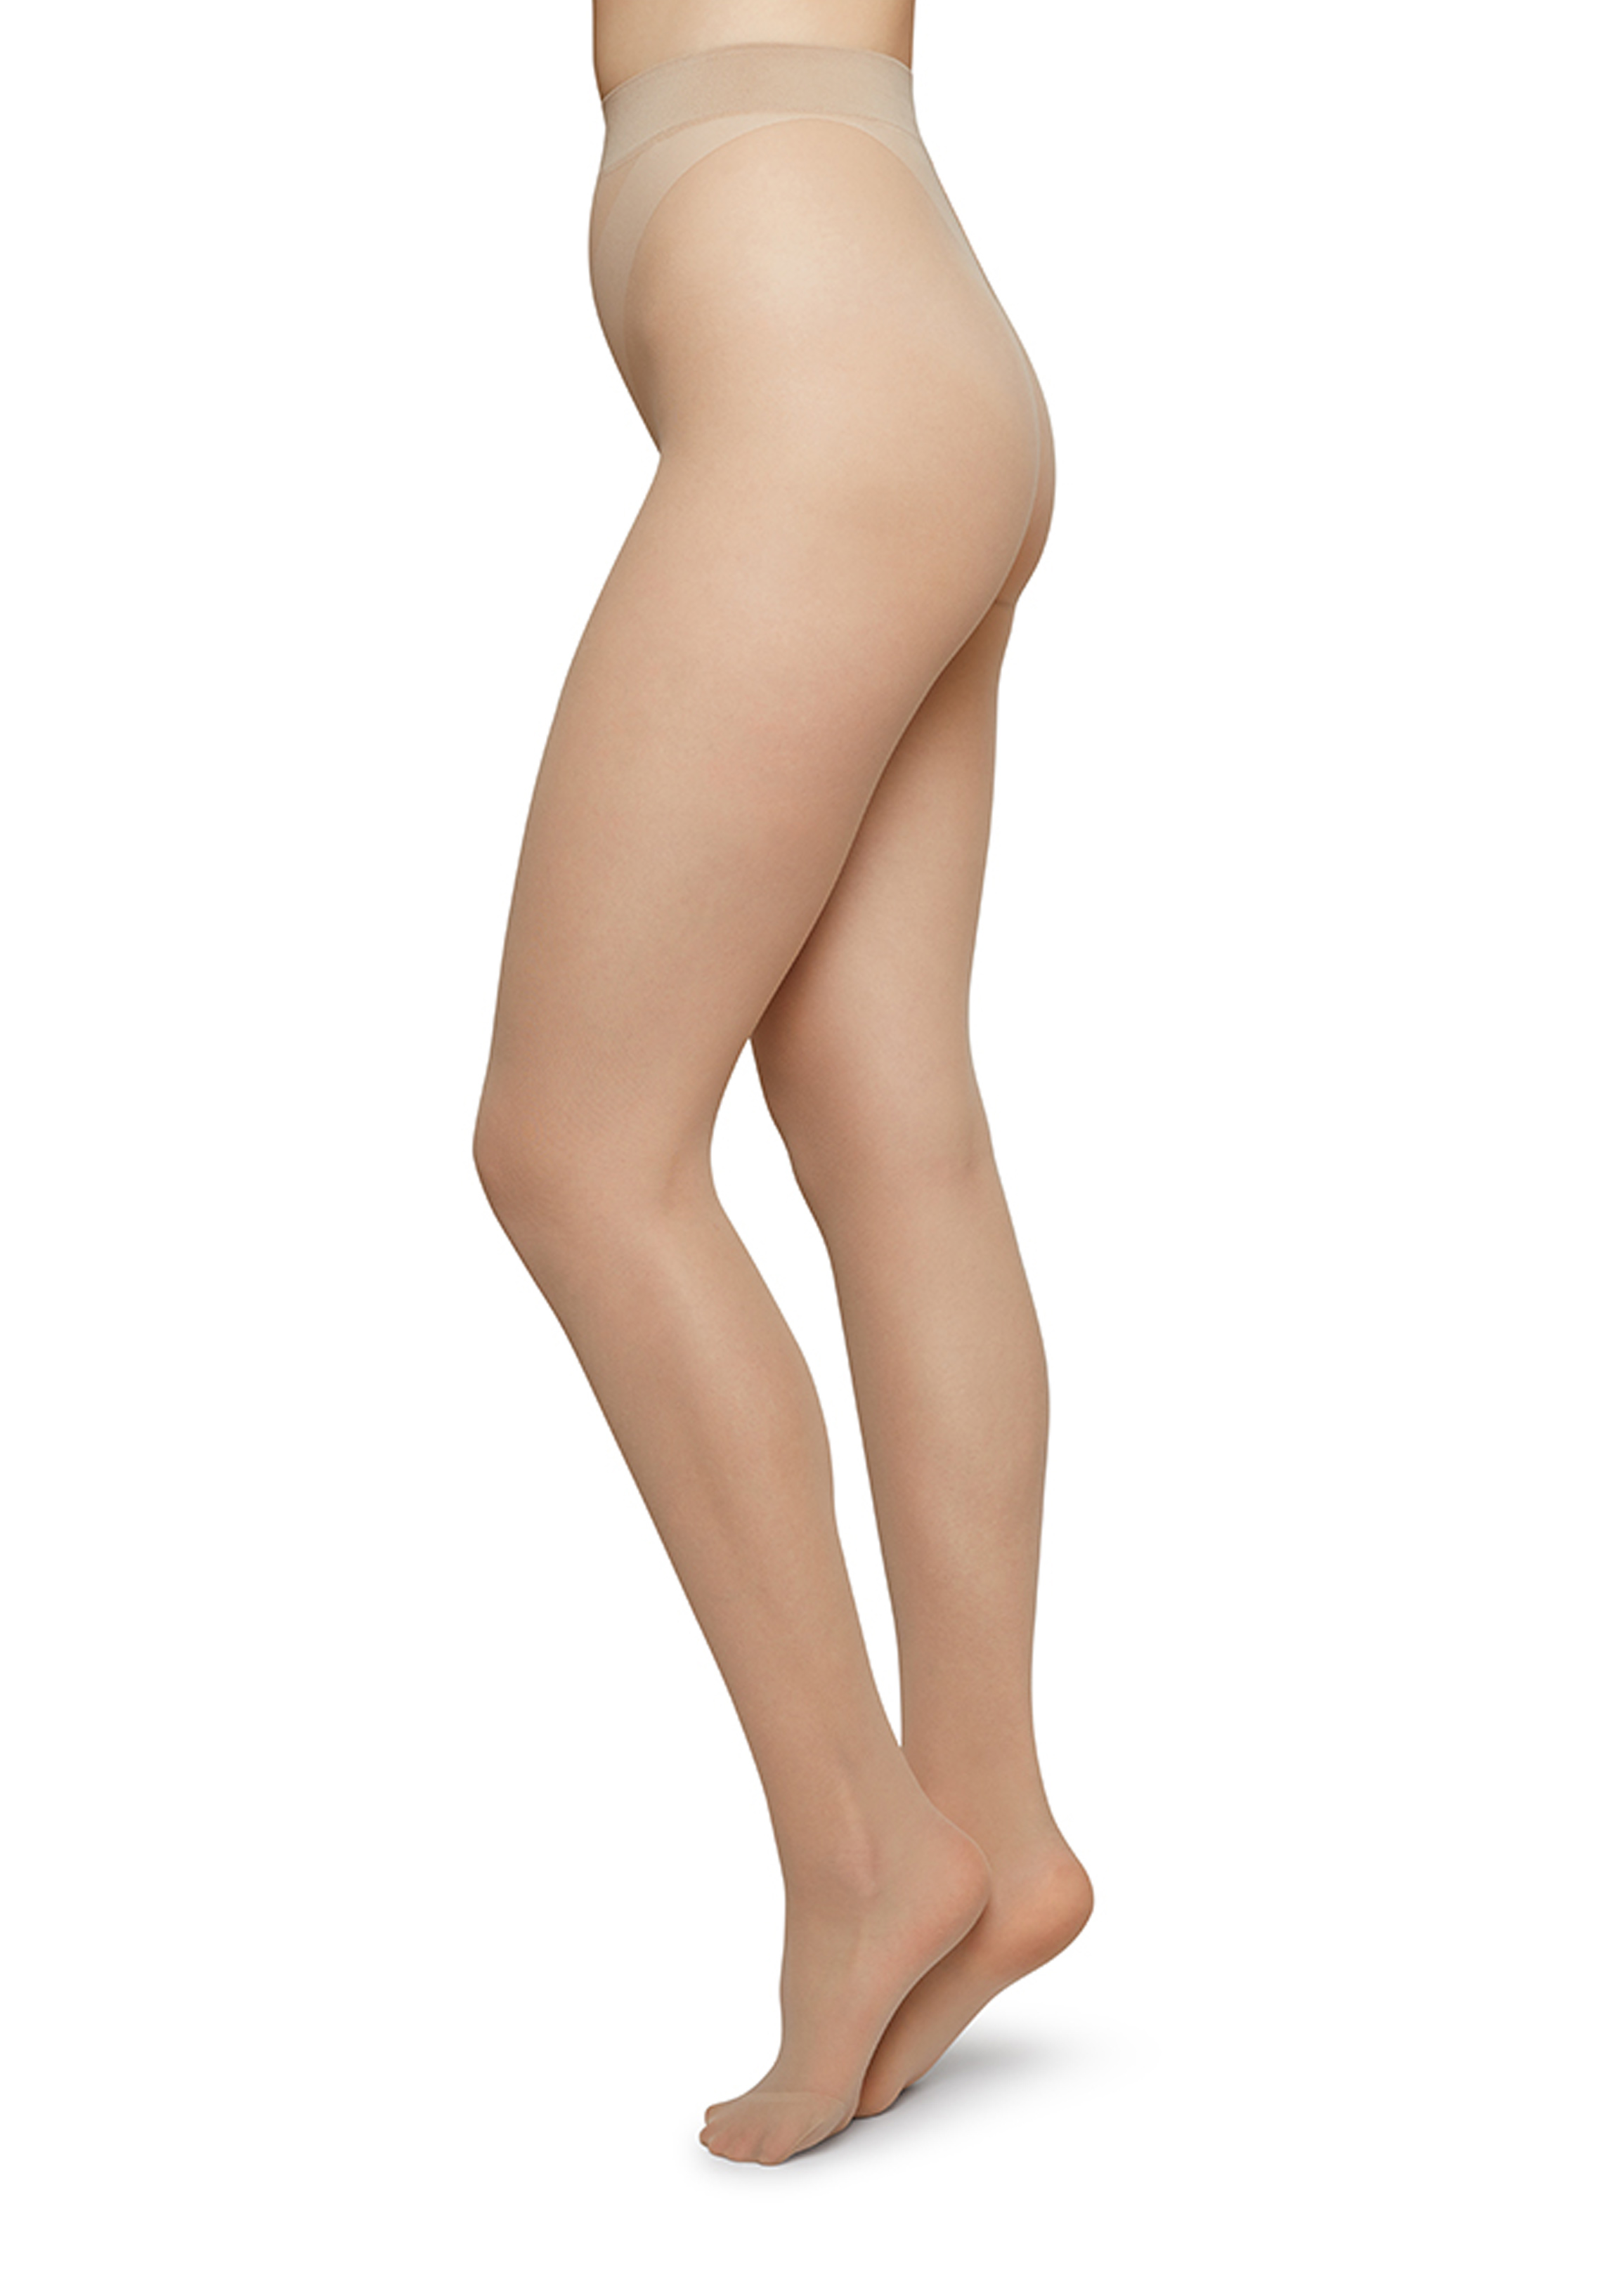 Swedish Stockings 20 Denier Innovation Tights in Beige